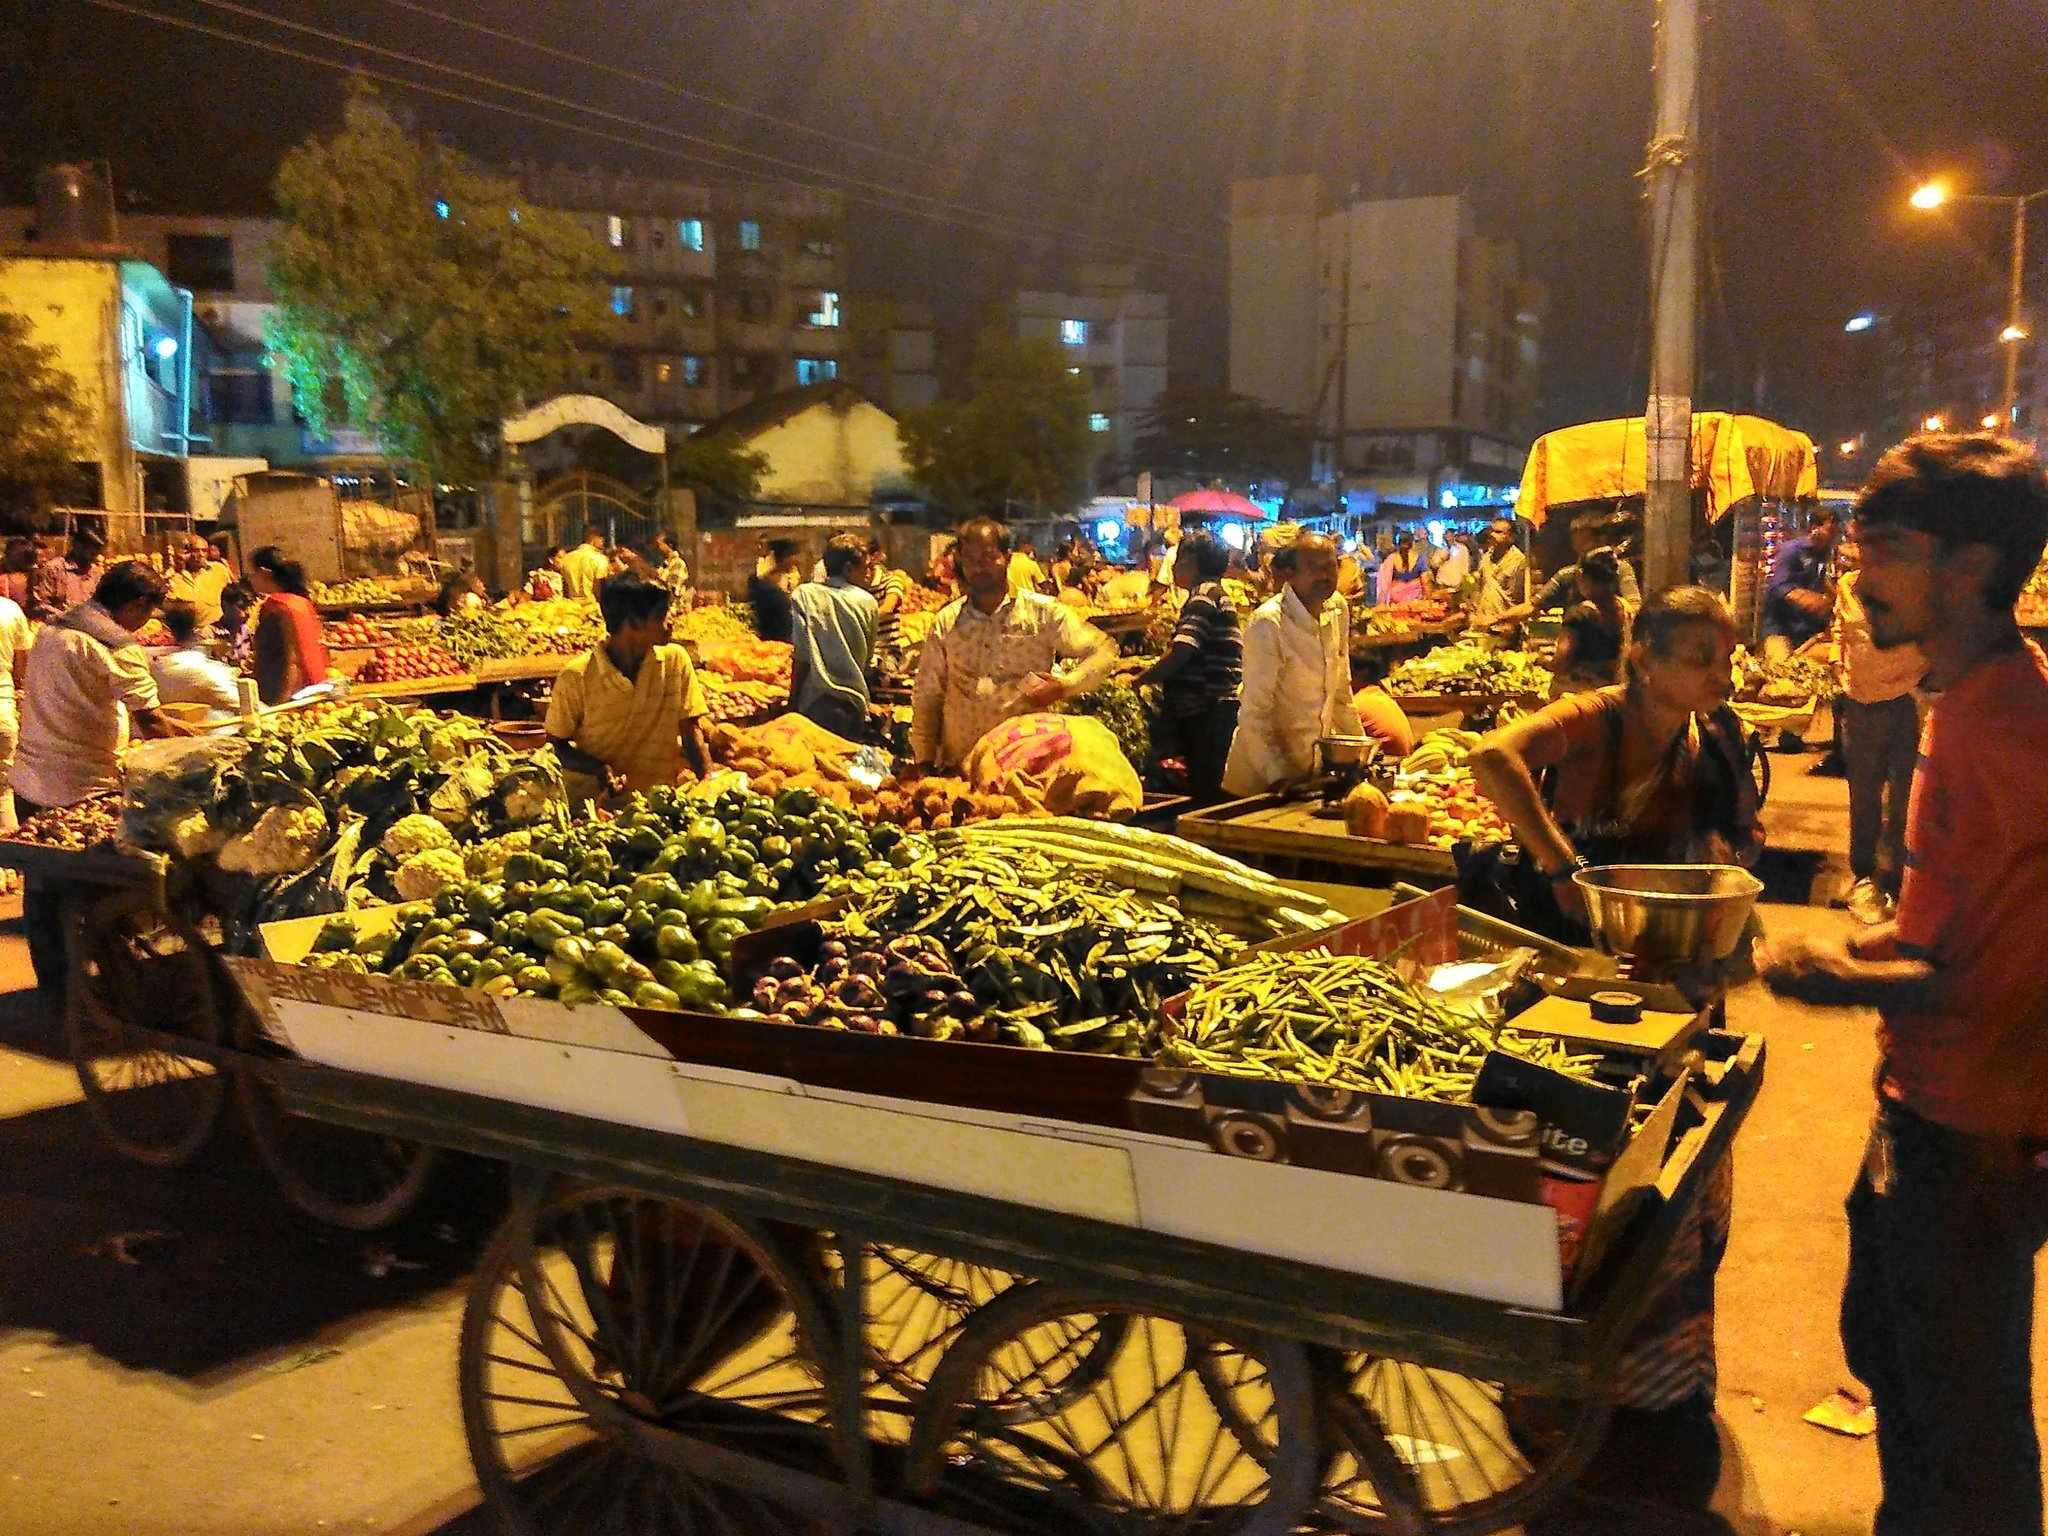 vegetable vendor carts manvelpada virar maharashtra india